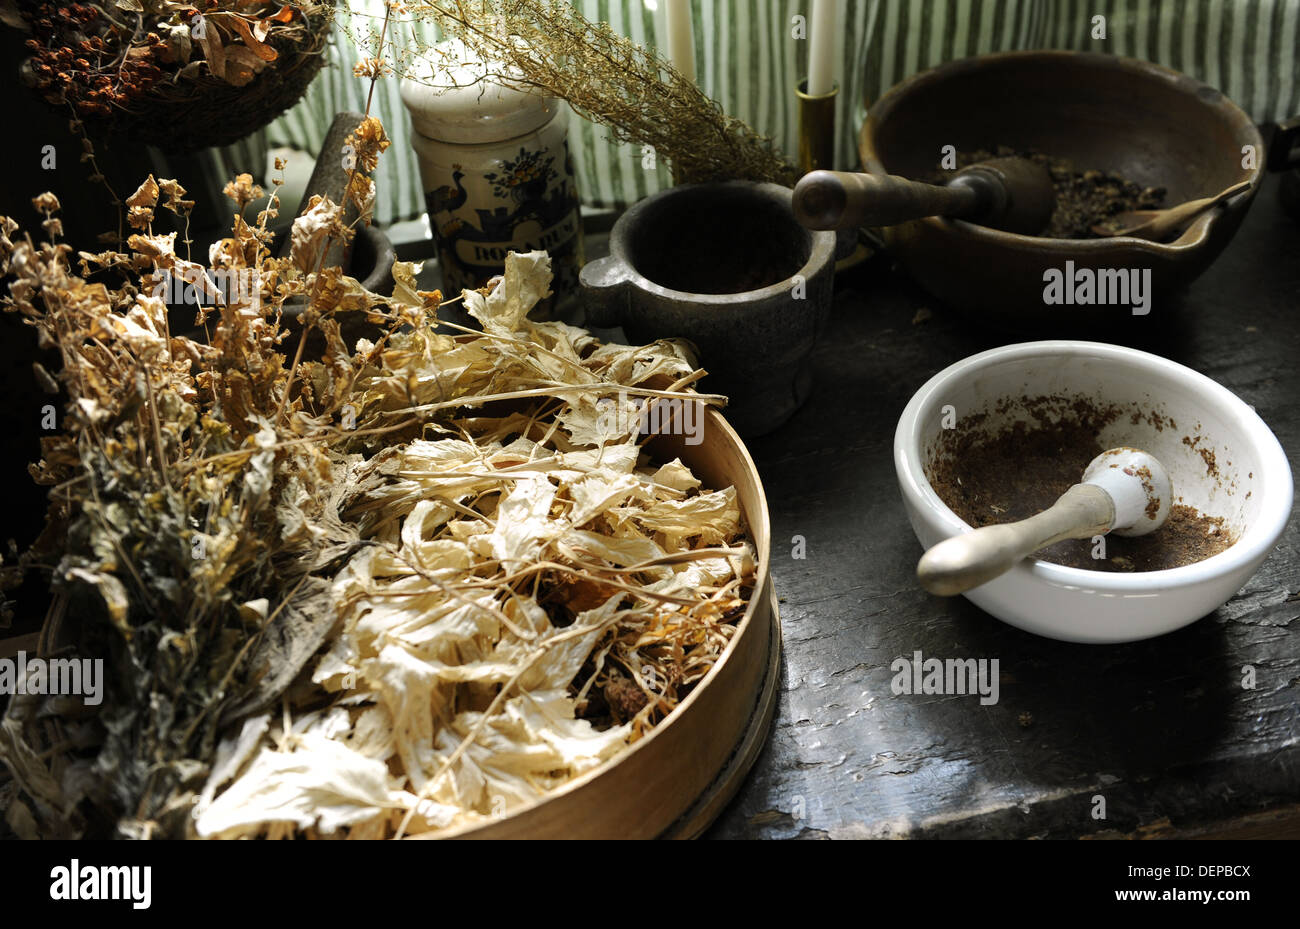 Apothecary's. Ancient herbalism. Pharmacy Museum. Turku. Finland. Stock Photo